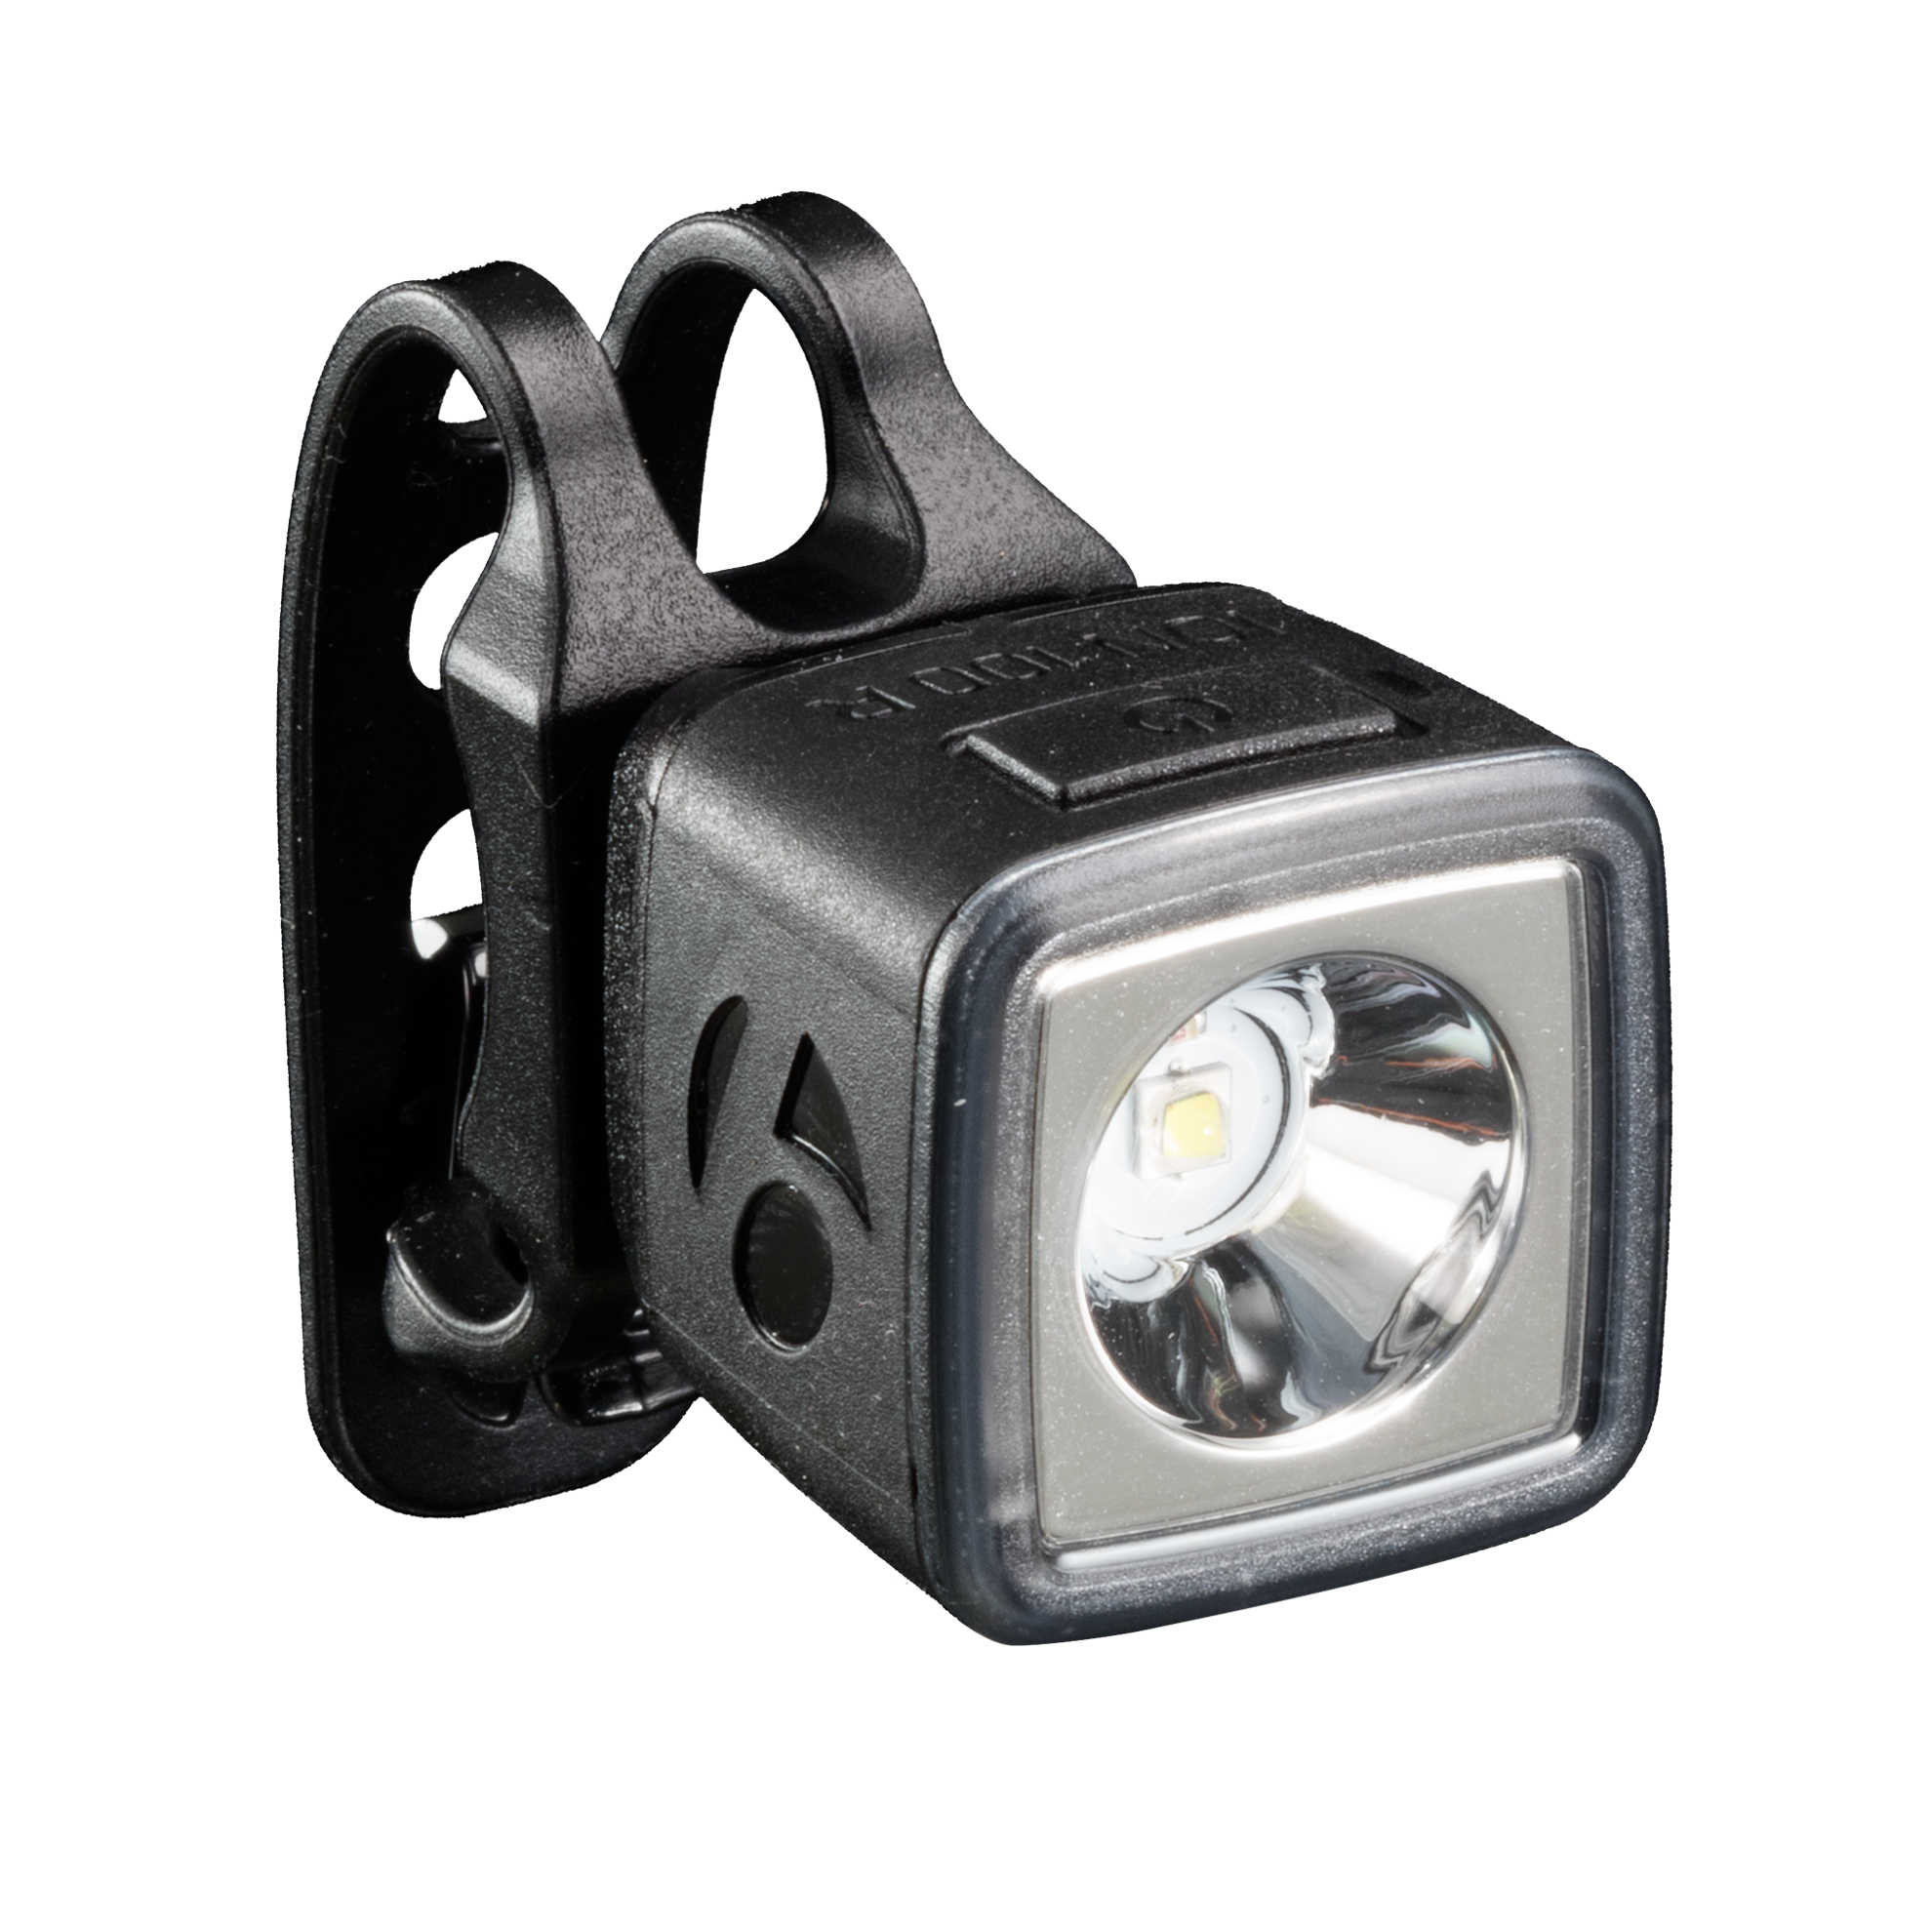 Bontrager Light Ion 100 R Headlight